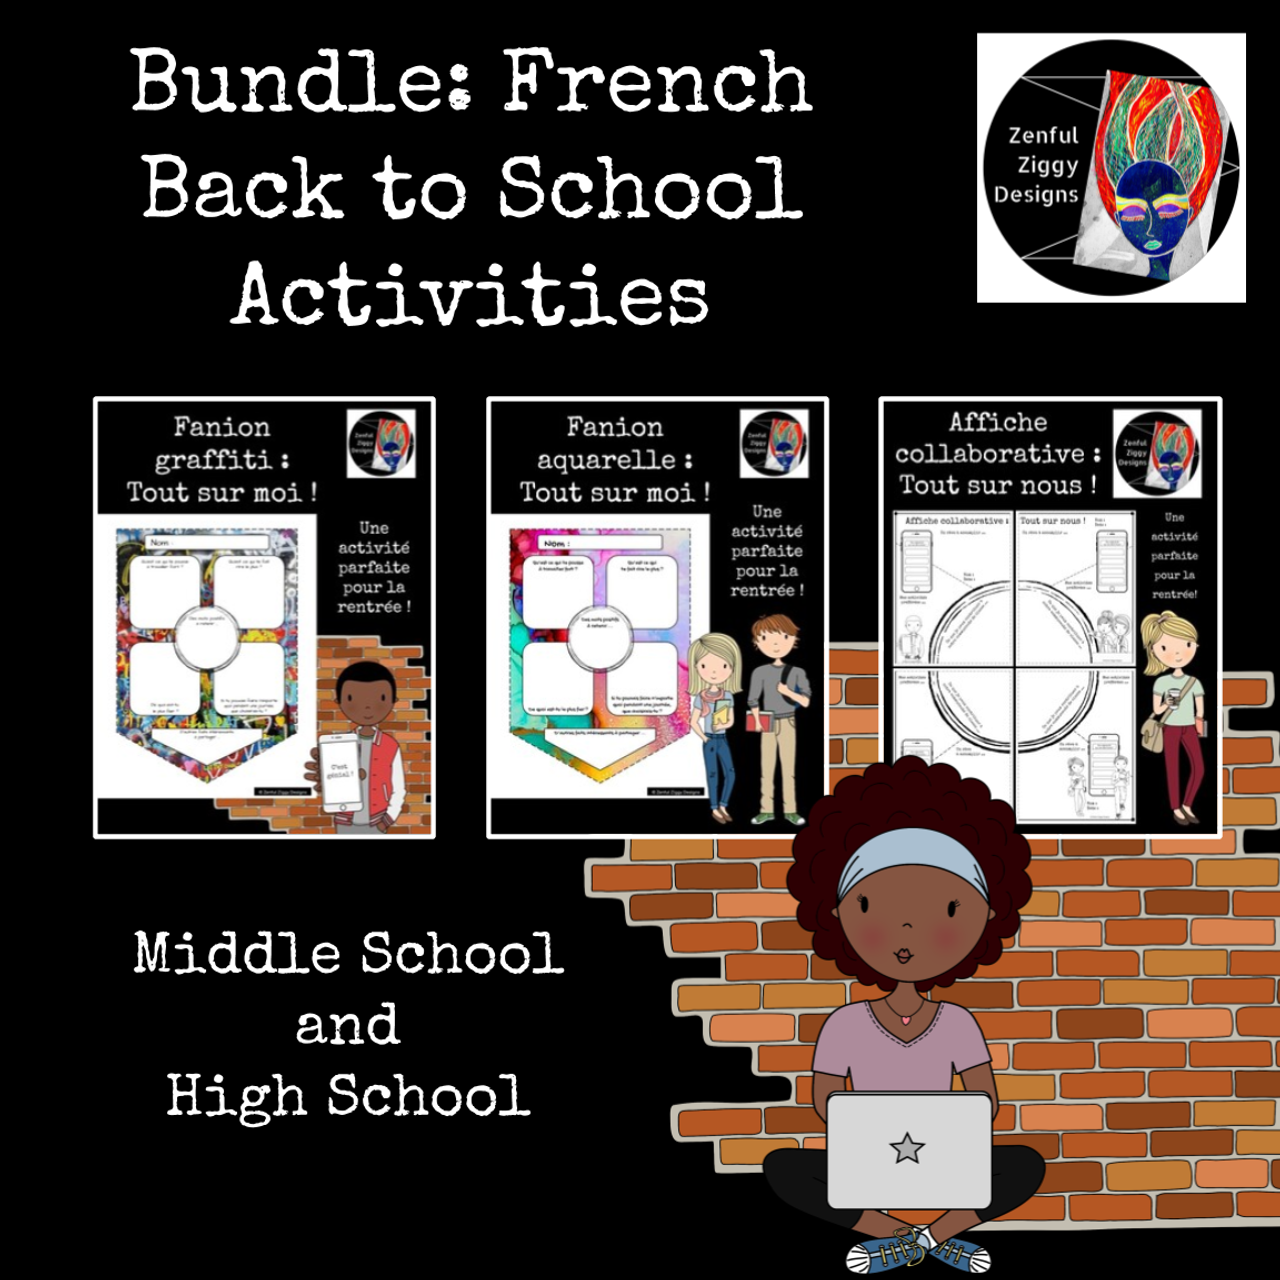 Bundle: French Back to School Activities